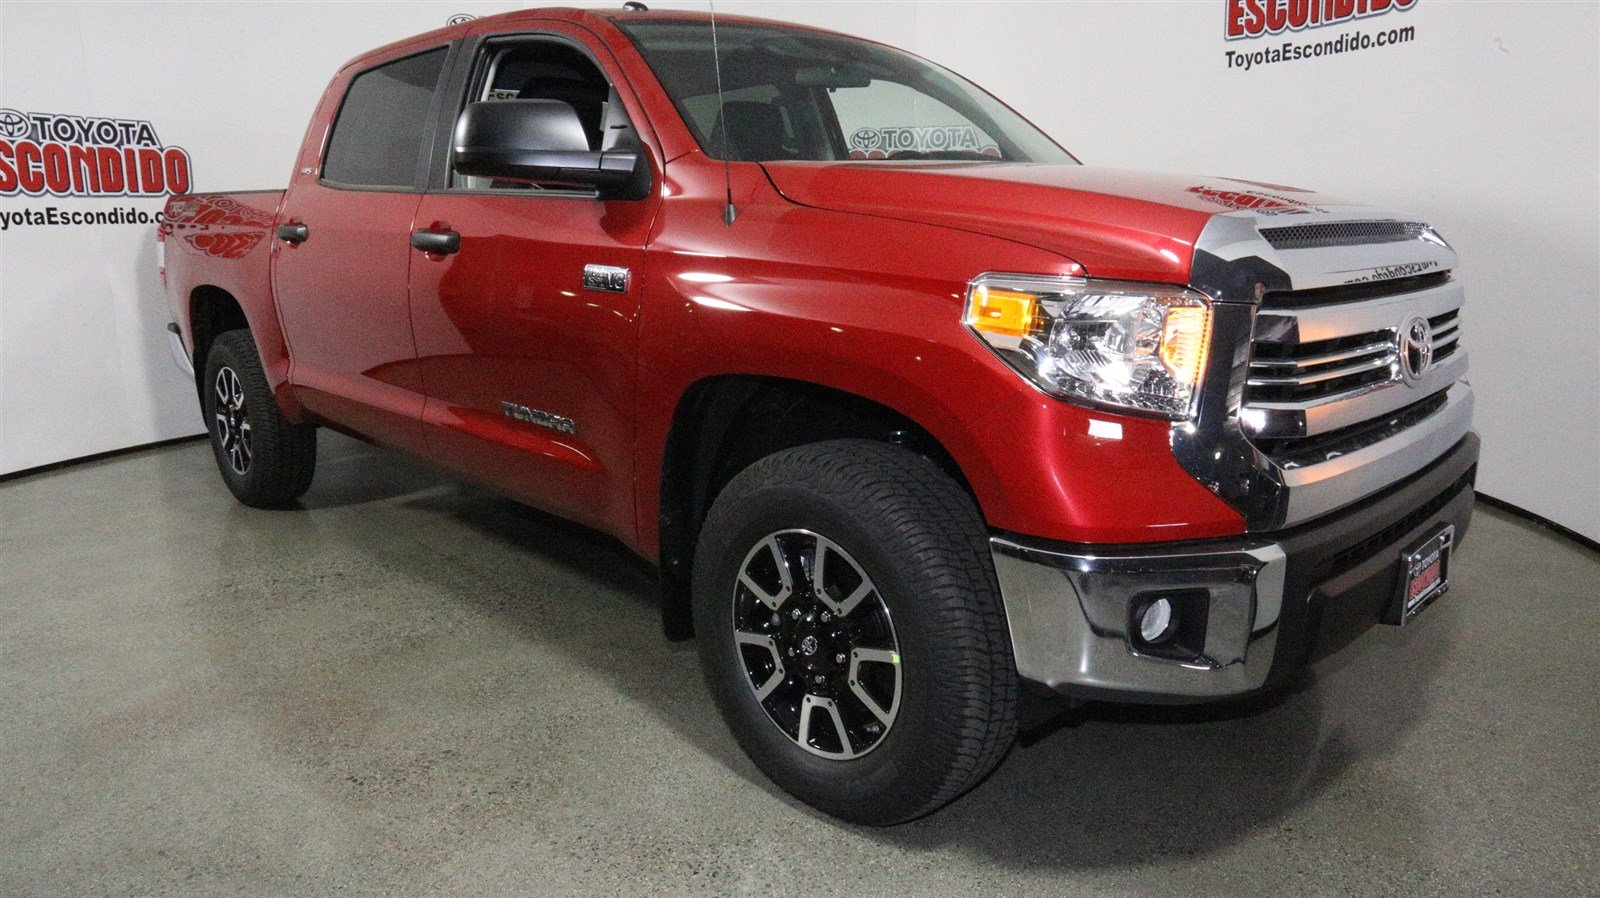 new 2017 toyota tundra sr5 4wd crew cab pickup in escondido hx647514 toyota escondido. Black Bedroom Furniture Sets. Home Design Ideas